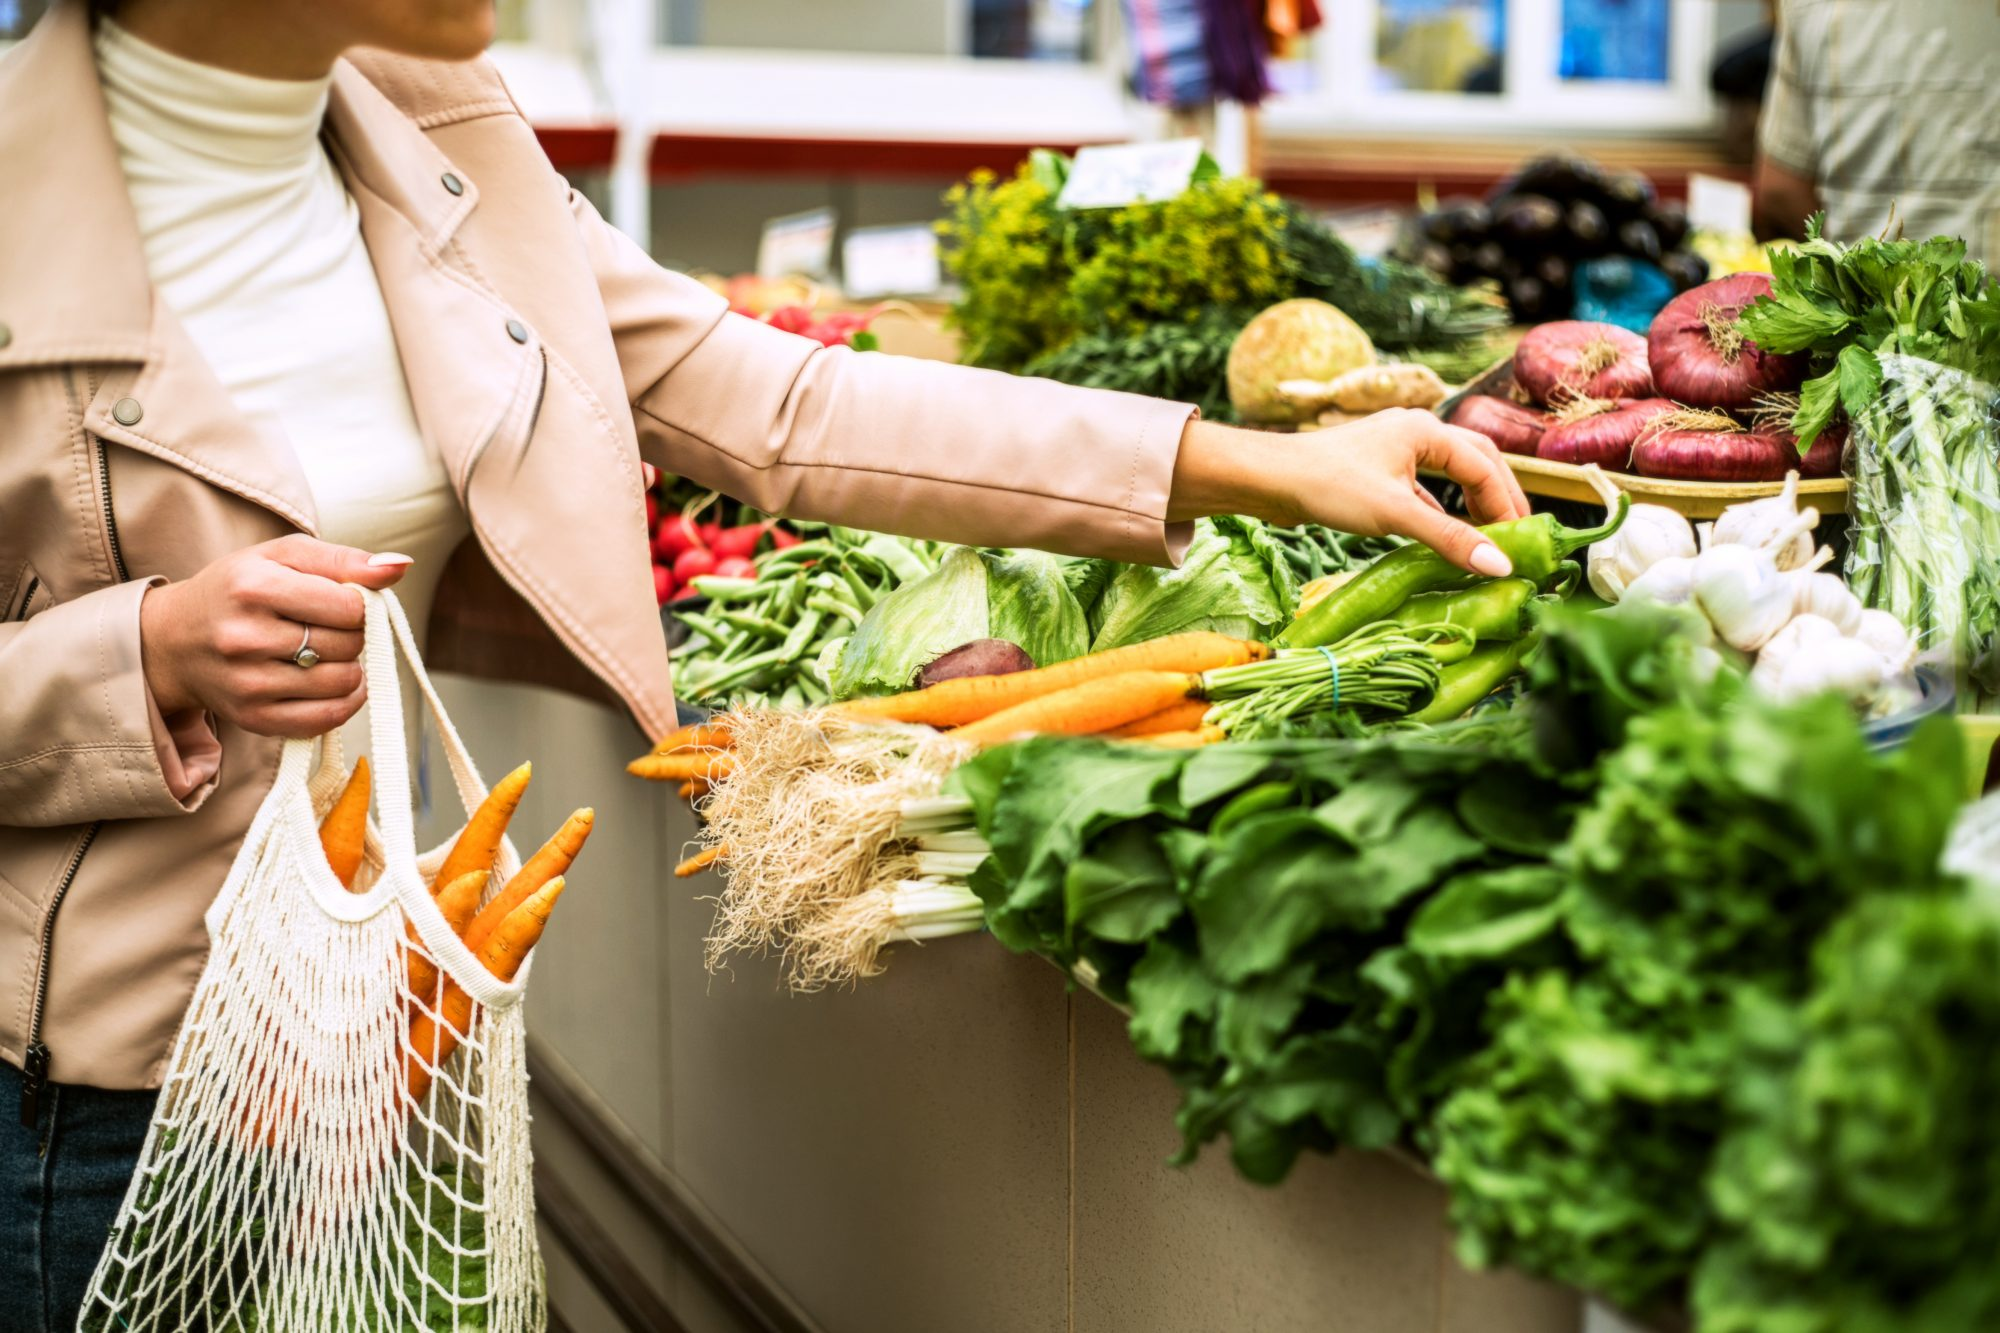 sustainable grocery shopping with reusable bag